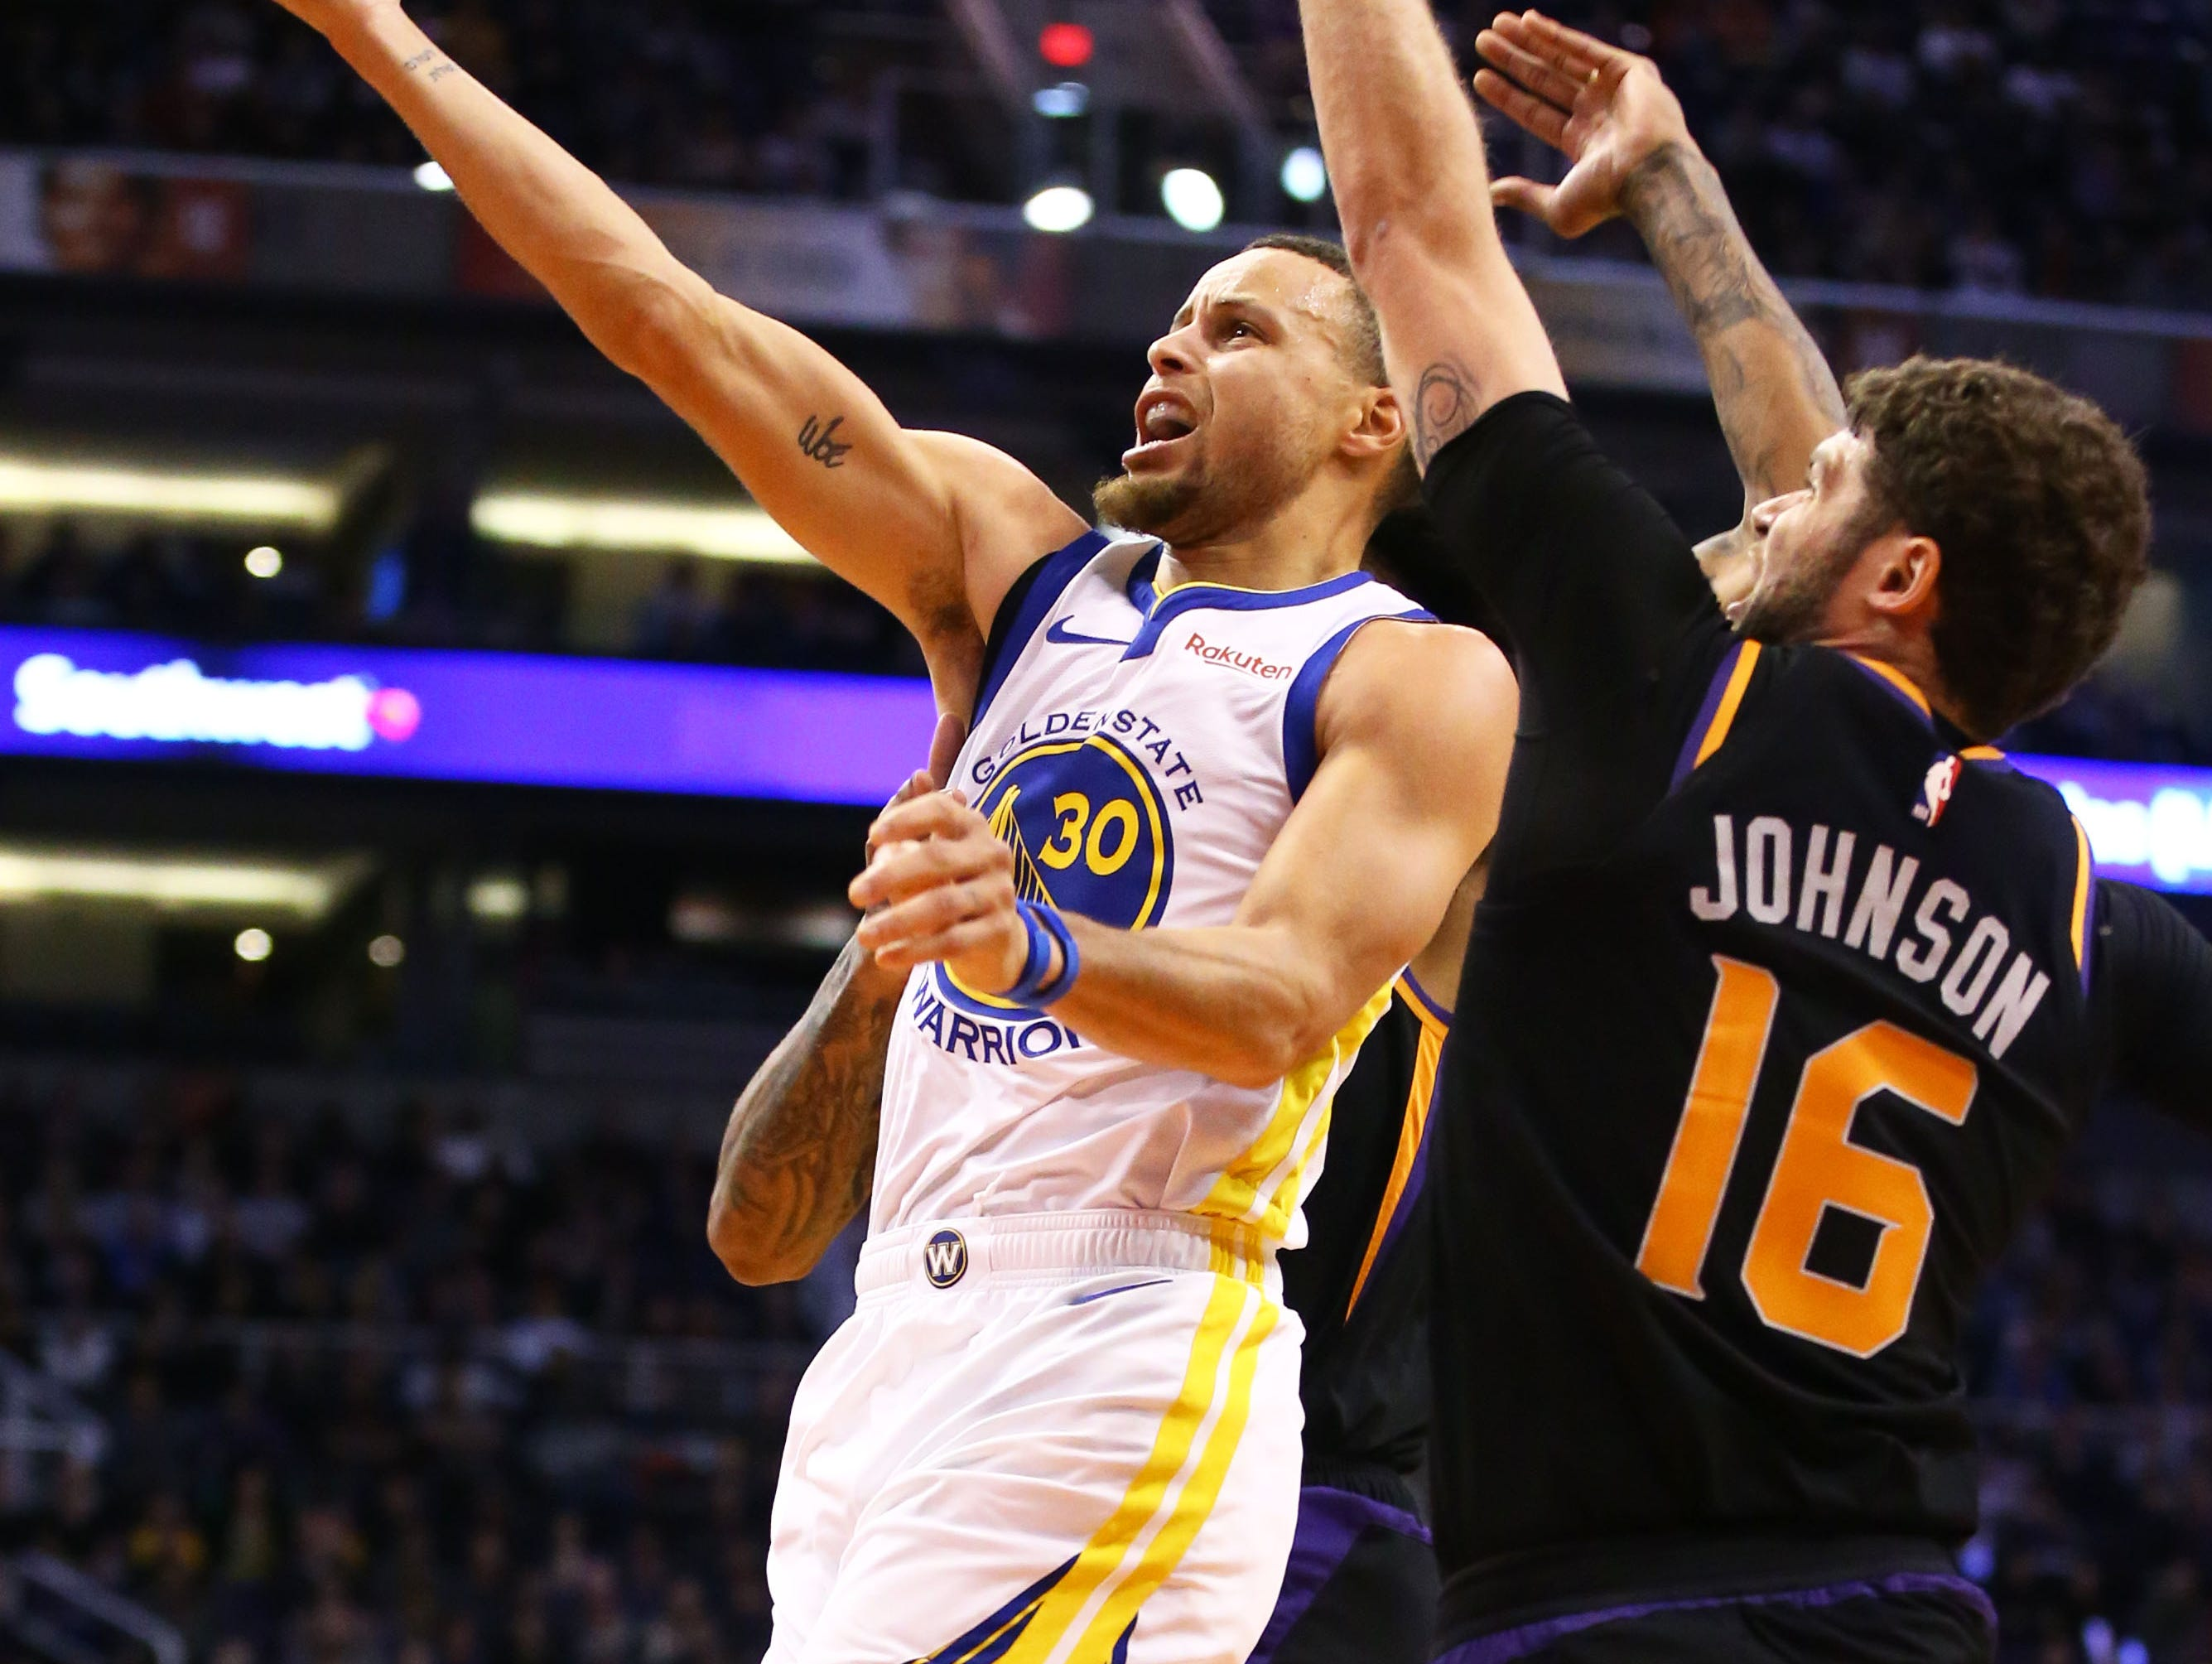 Golden State Warriors guard Stephen Curry drives to the basket against the Phoenix Suns in the second half on Feb. 8 at Talking Stick Resort Arena.